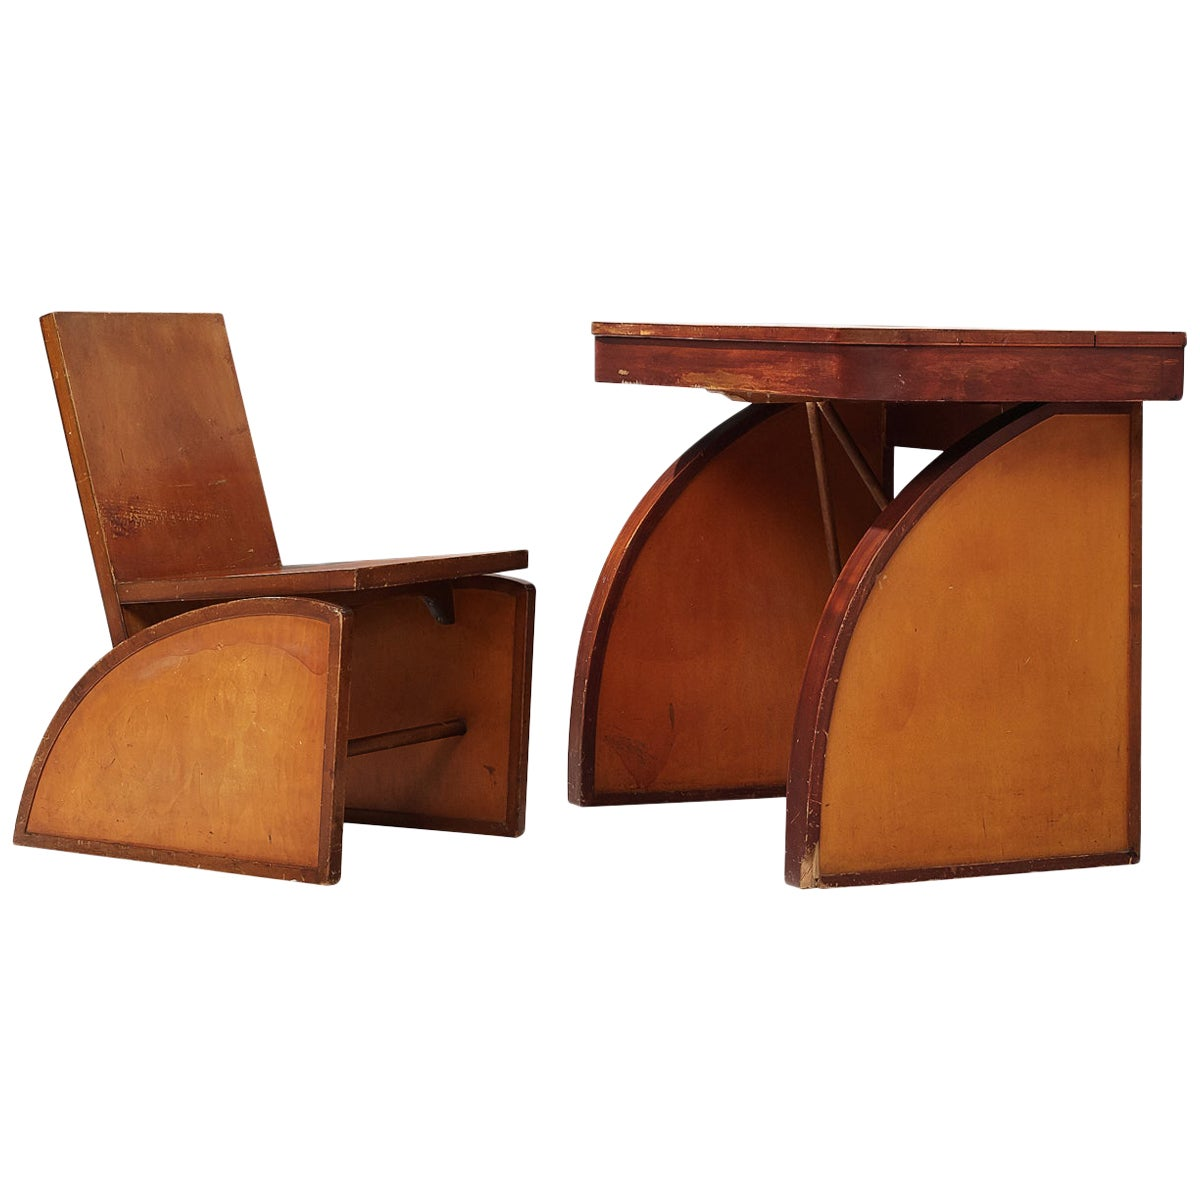 Rare Desk with Chair by Brown Saltman